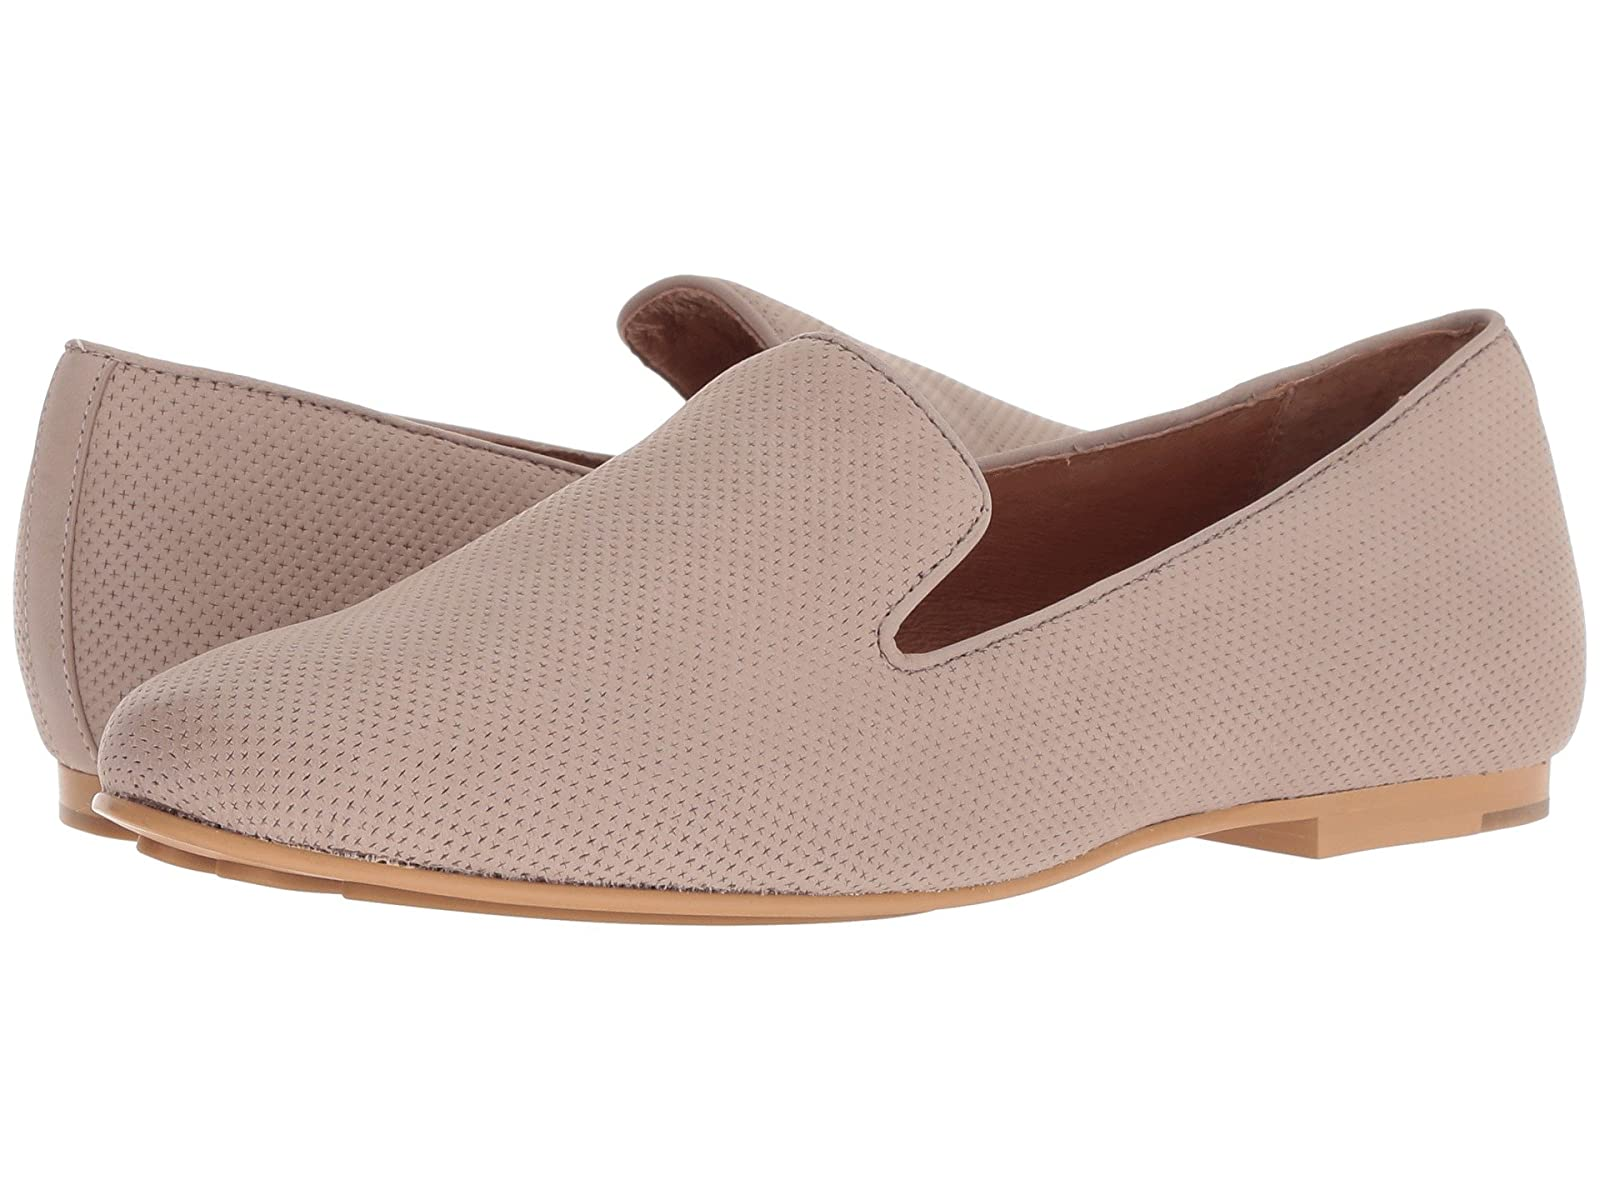 Gentle Souls by Kenneth Cole Eugene 2Atmospheric grades have affordable shoes